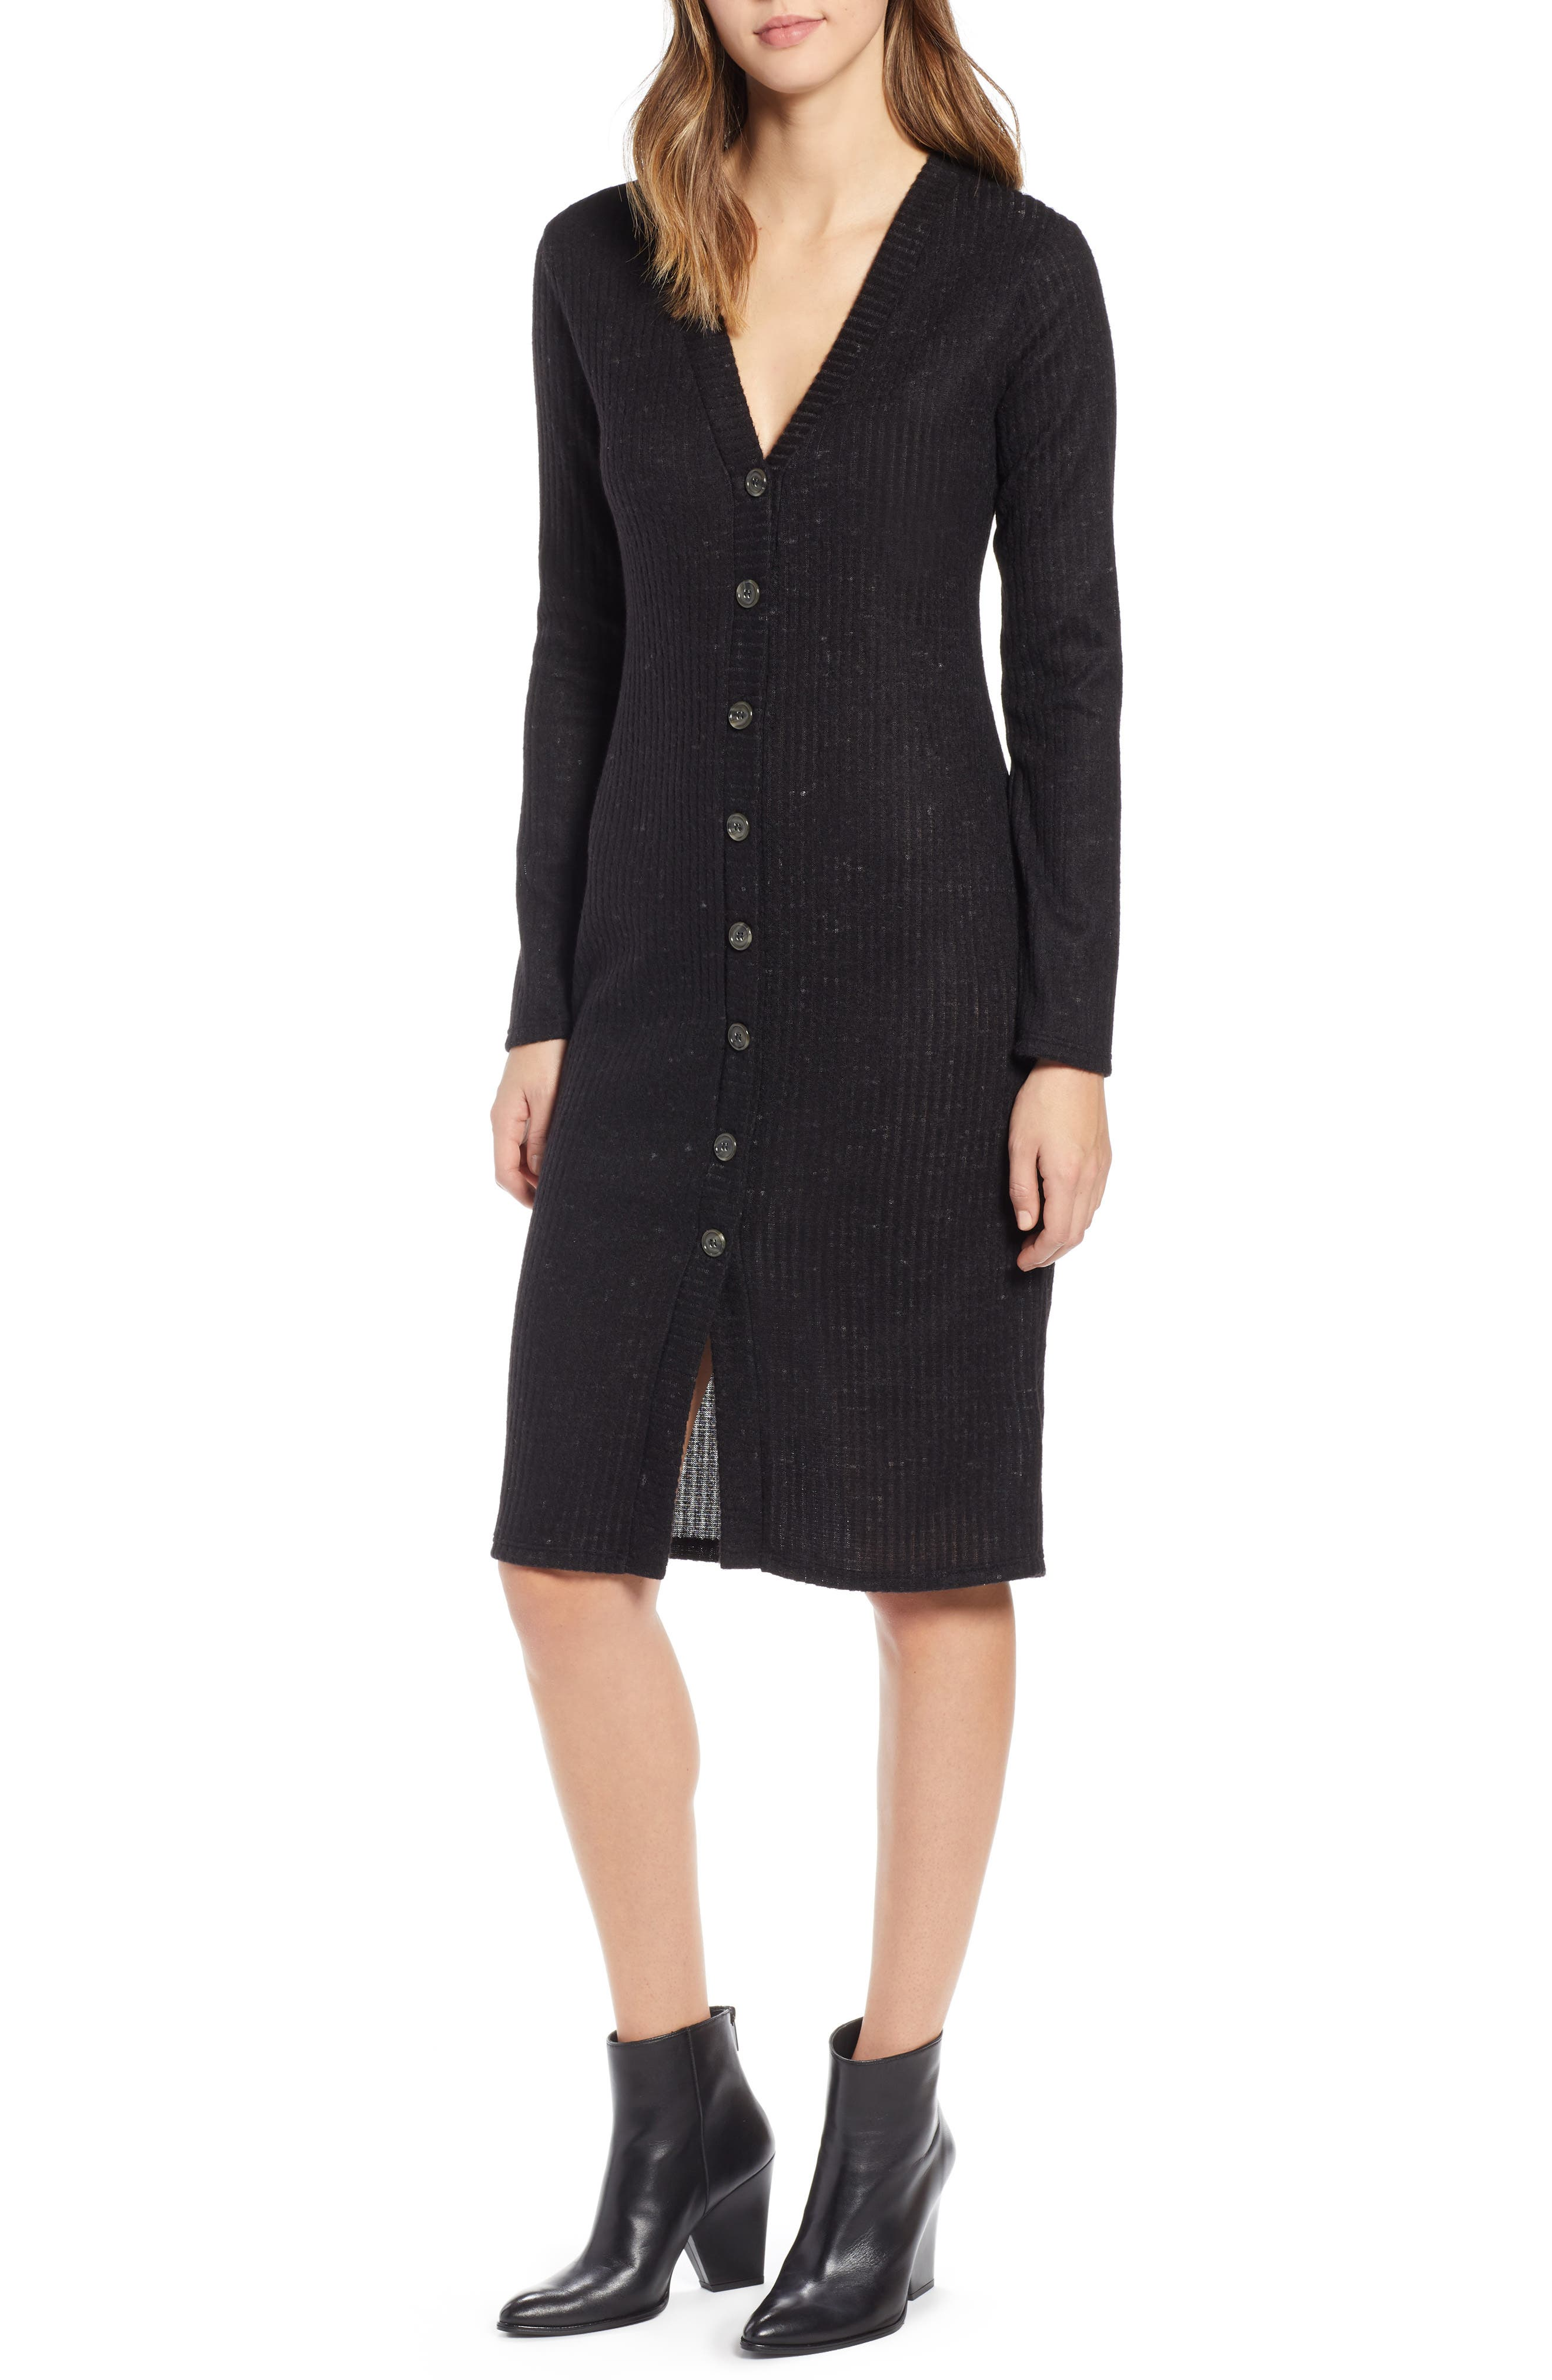 Socialite Sweater Dress, Black